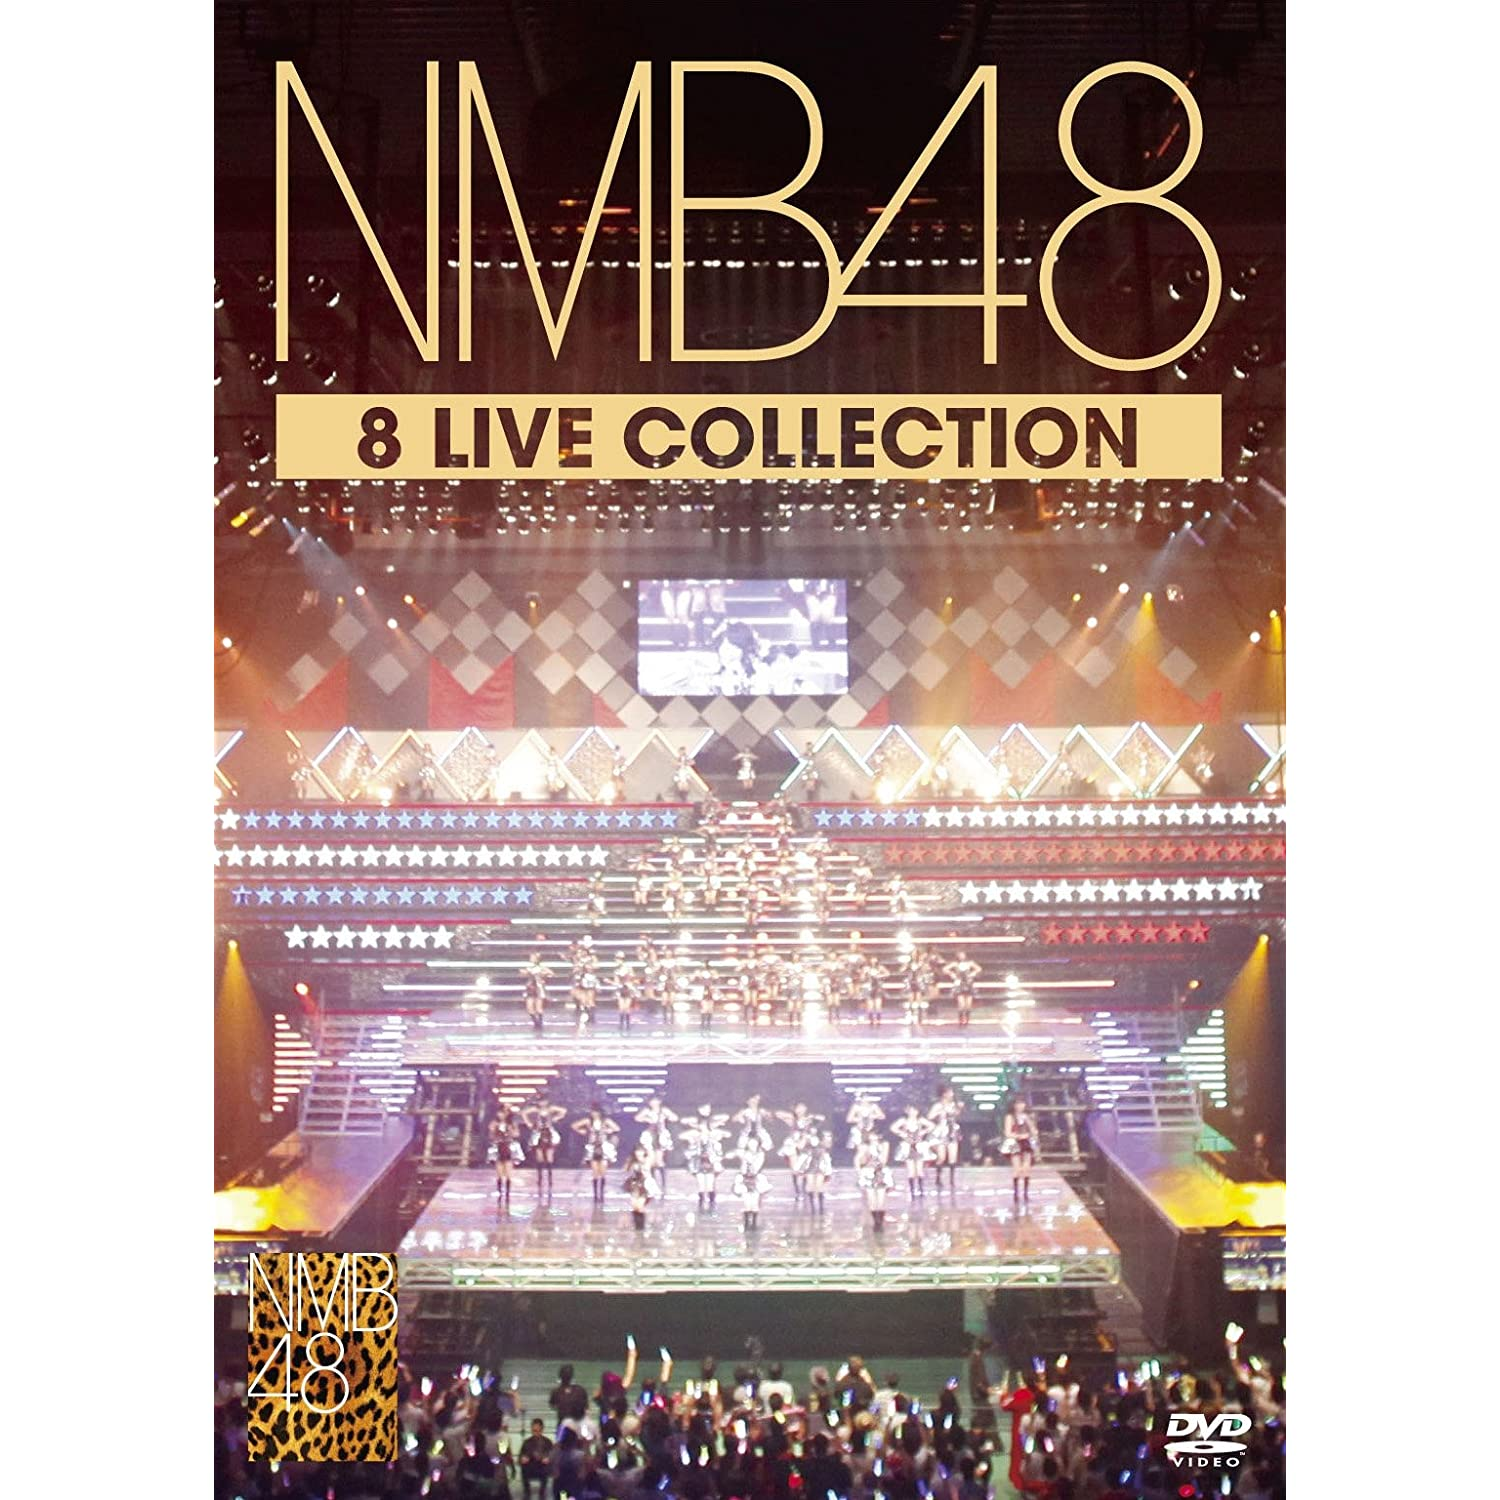 [DVDISO] NMB48 – NMB48 8 LIVE COLLECTION [2014.03.31]